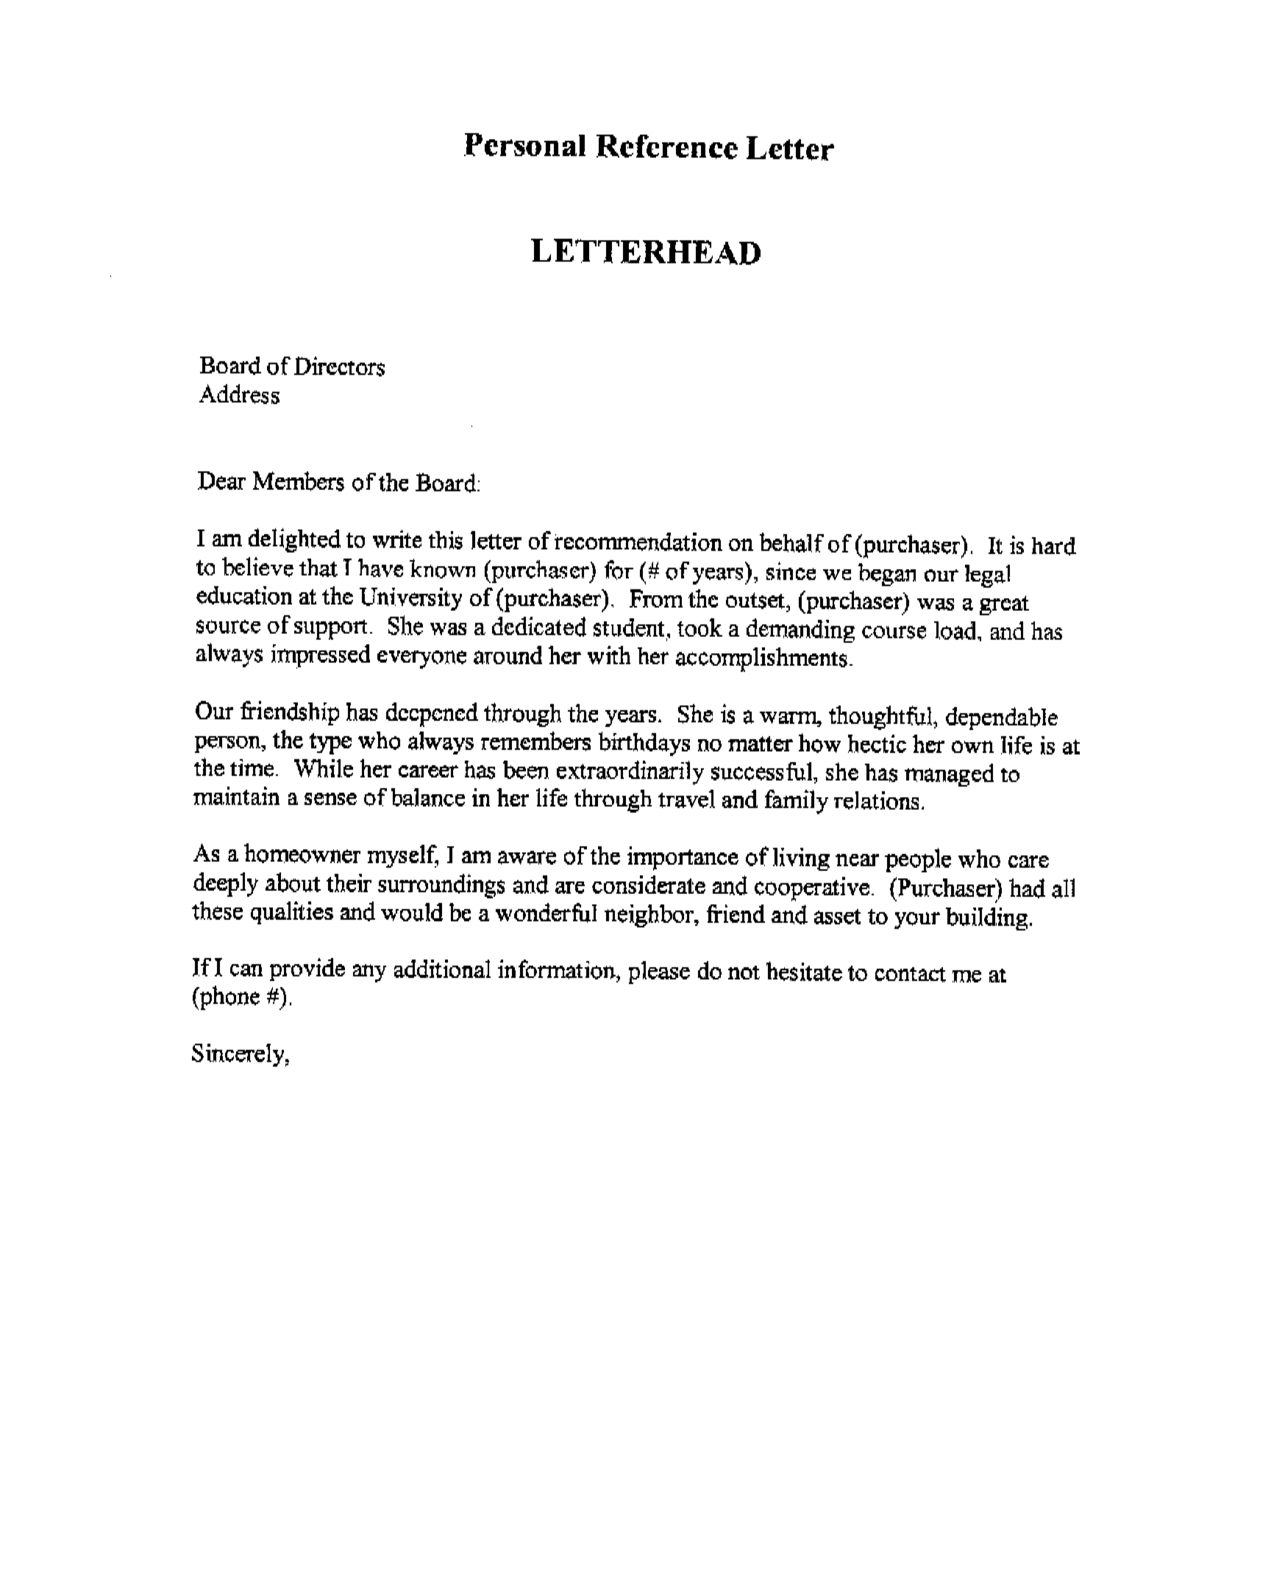 Professional recommendation letter this is an example of a professional recommendation letter this is an example of a professional recommendation written for an employee spiritdancerdesigns